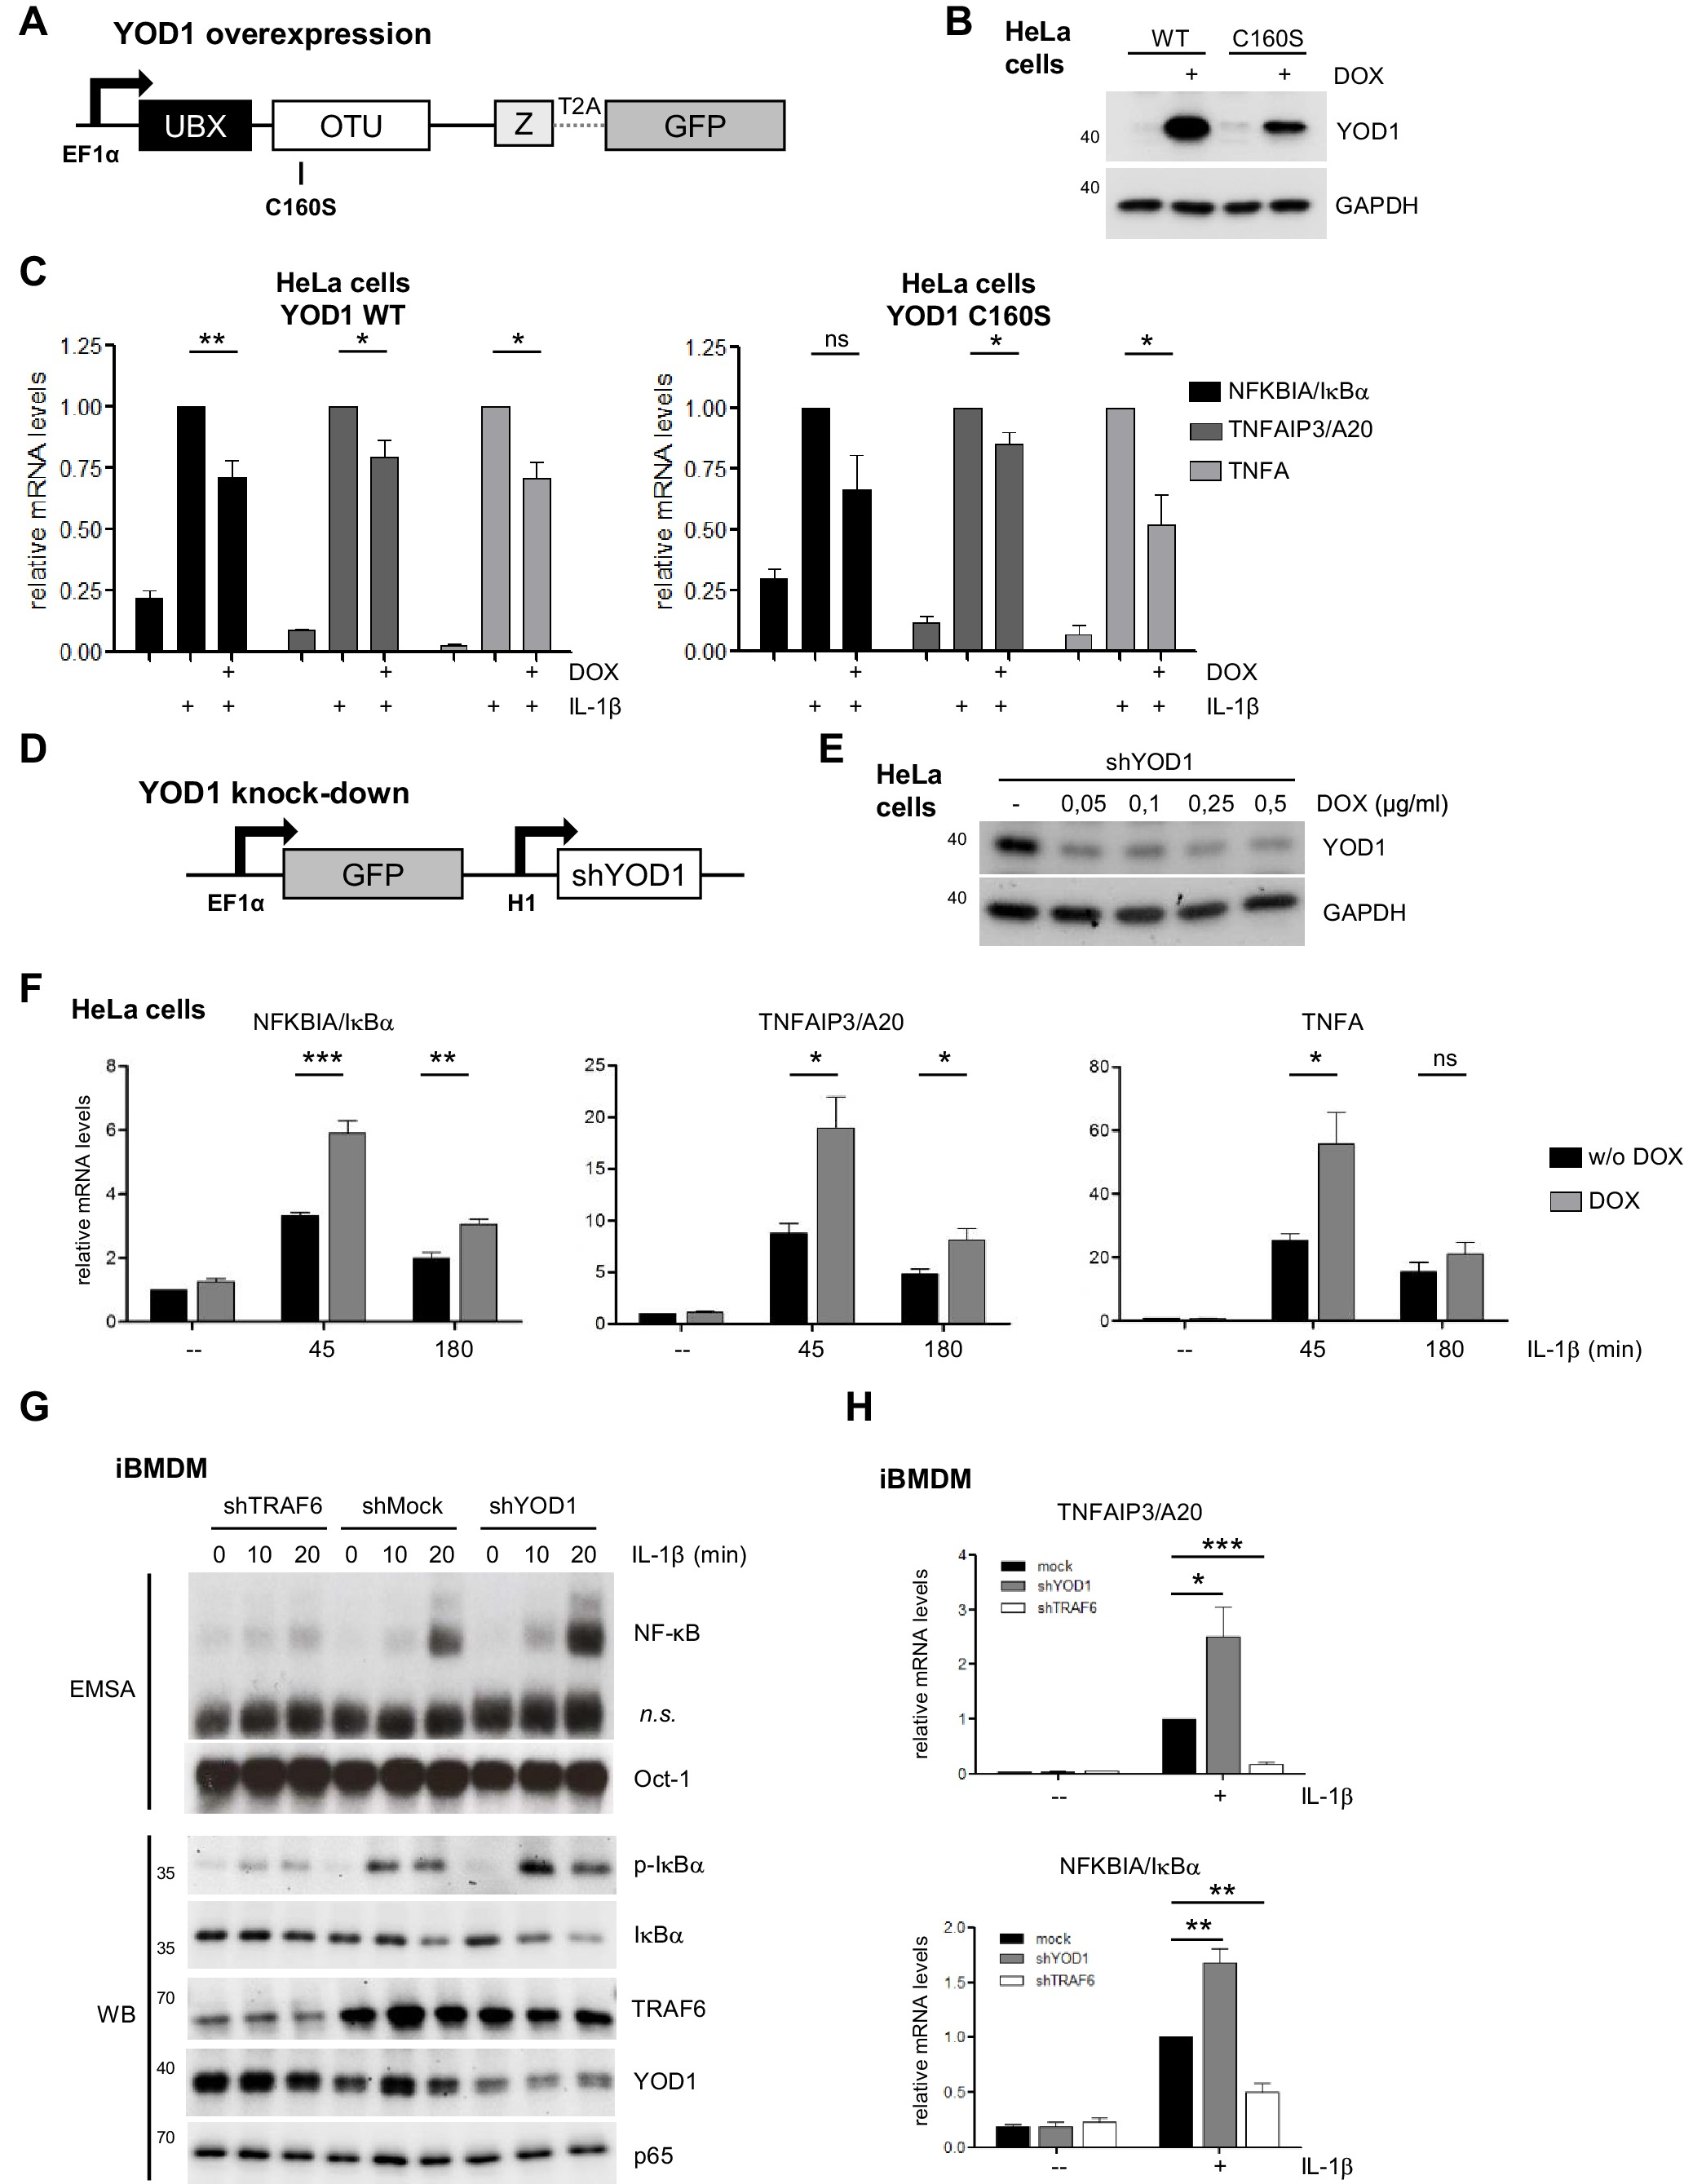 YOD1/TRAF6 association balances p62-dependent IL-1 signaling to NF-κB                    The transcription factors TFE3 and TFEB amplify p53 dependent transcriptional programs in response to DNA damage                                      Glucose intake hampers PKA-regulated HSP90 chaperone activity                                      Lipidation-independent vacuolar functions of Atg8 rely on its noncanonical interaction with a vacuole membrane protein